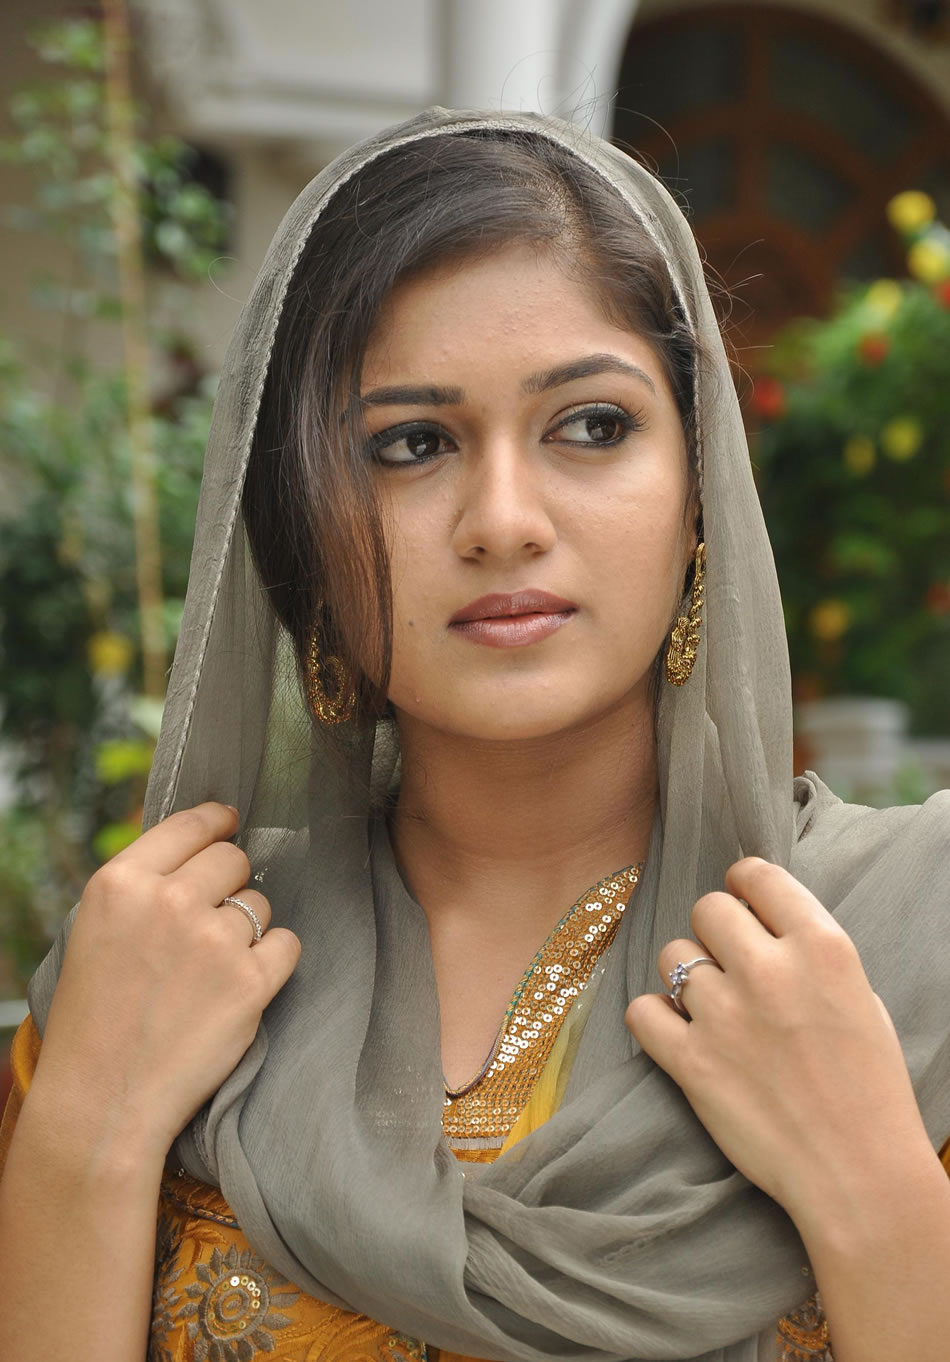 Meghana raj face photos